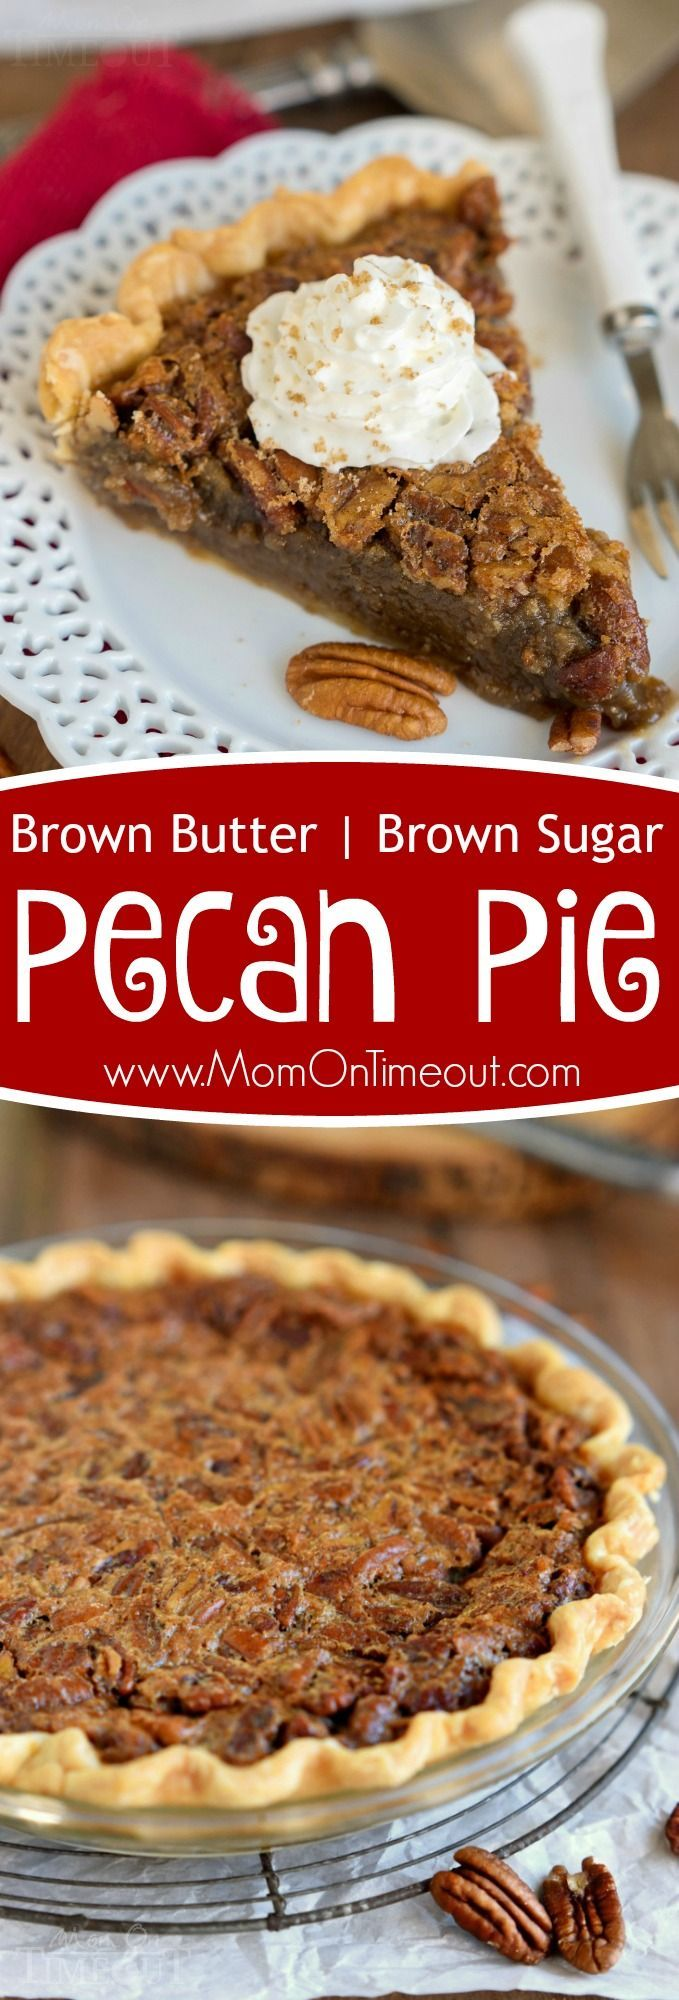 This Brown Butter Brown Sugar Pecan Pie is the perfect addition to your holiday table this year! This recipe is SO easy you're going to want to make two - one for you and one for a friend! #ShareTheJoy